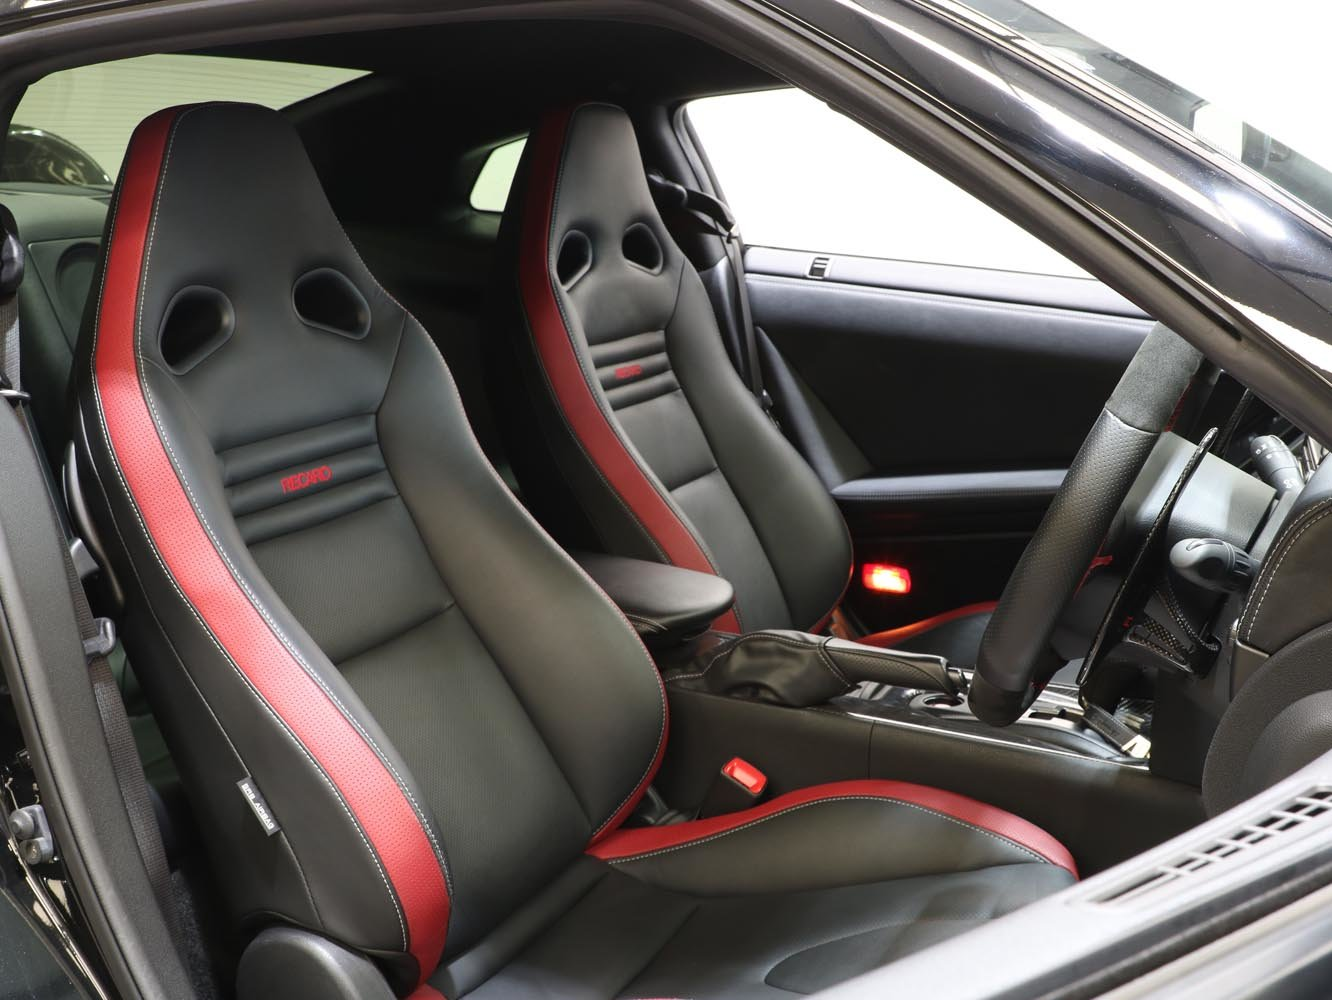 2015 15 15 NISSAN GTR LITCHFIELD 3.8 V6 PREMIUM EDITION AUTO For Sale (picture 5 of 6)